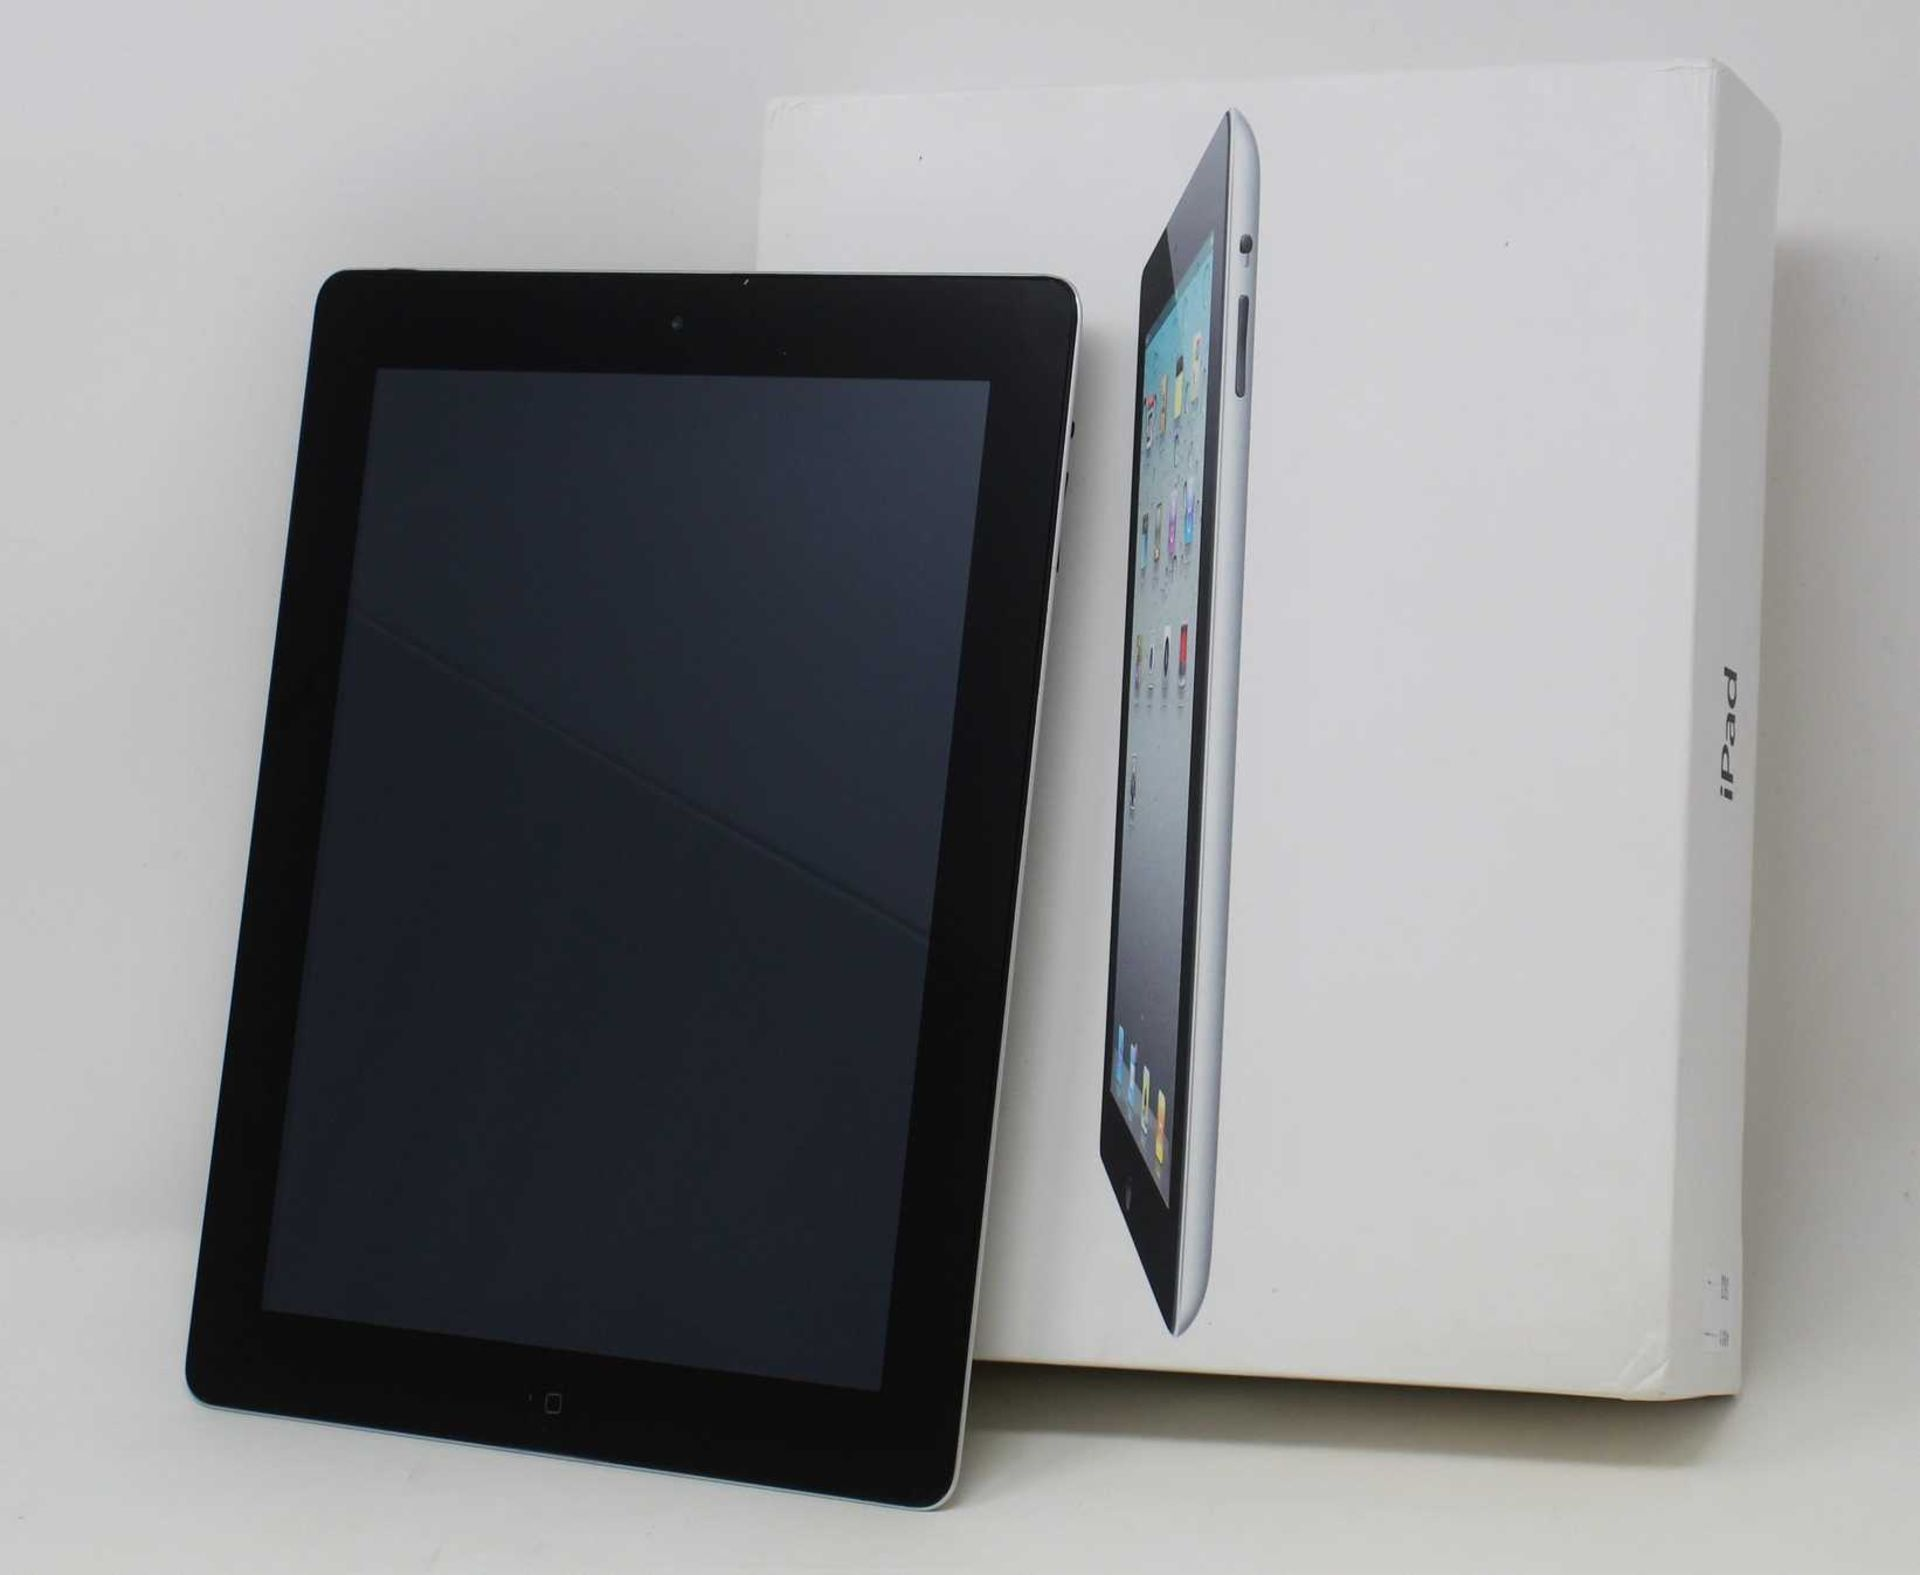 A pre-owned Apple iPad 2 (Wi-Fi Only) 16GB in Black (FRP clear. Some light some damage to casing) (